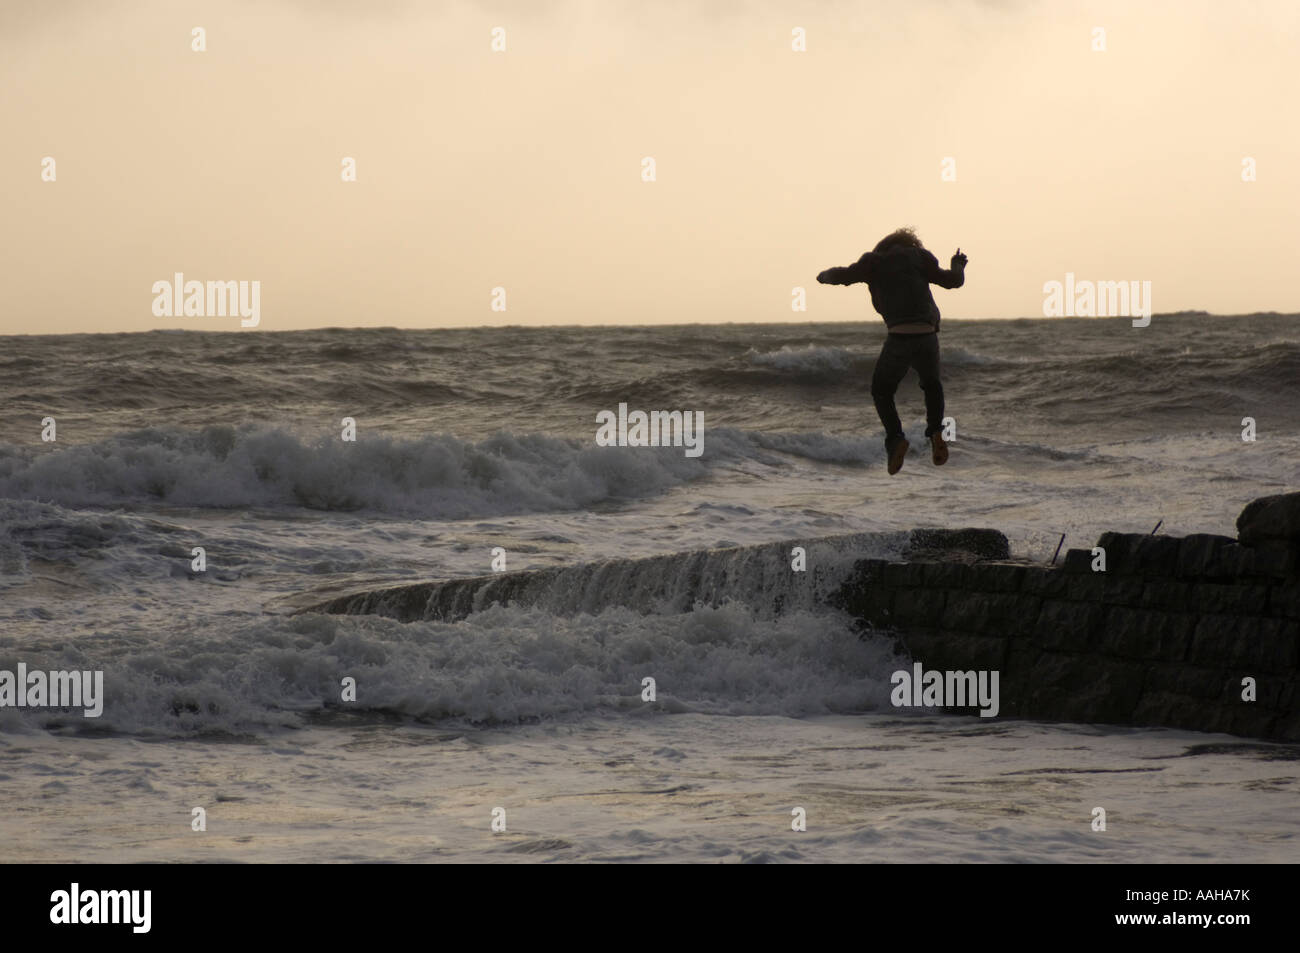 young man jumping on stone jetty during a storm dodging the waves: health and safety risk - Stock Image